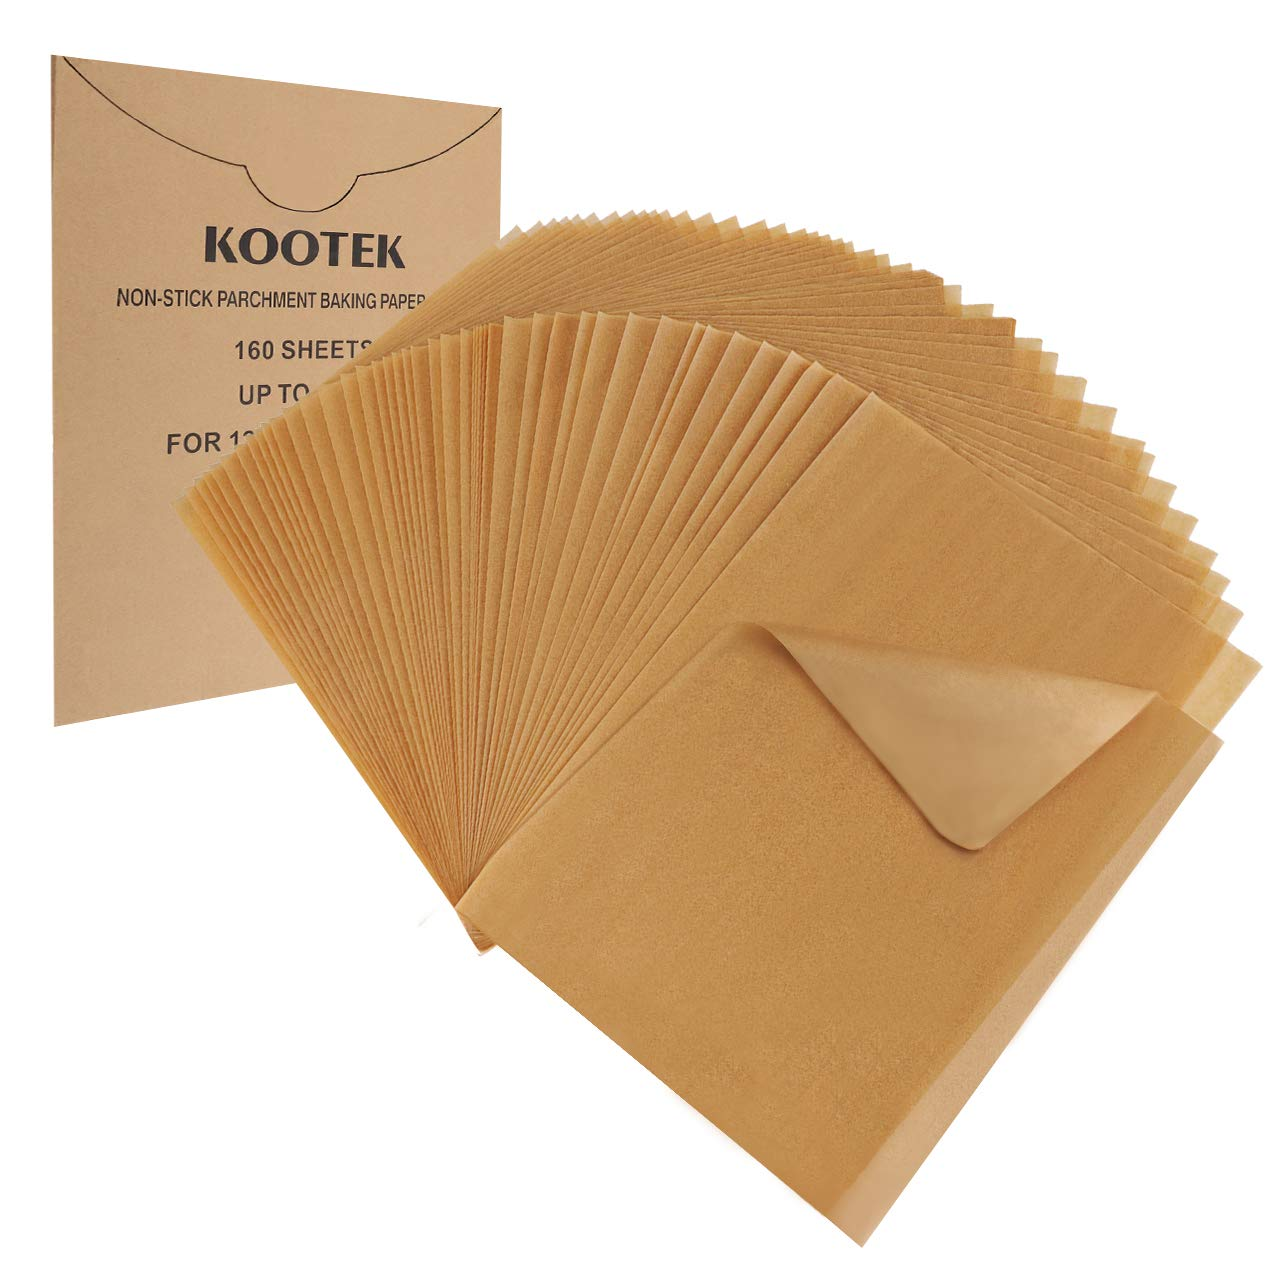 Kootek 160 Pcs Parchment Paper Unbleached Baking Sheets Pre-cut Parchments Sheet Liner, Non-stick for Baking Cooking Steaming by Kootek